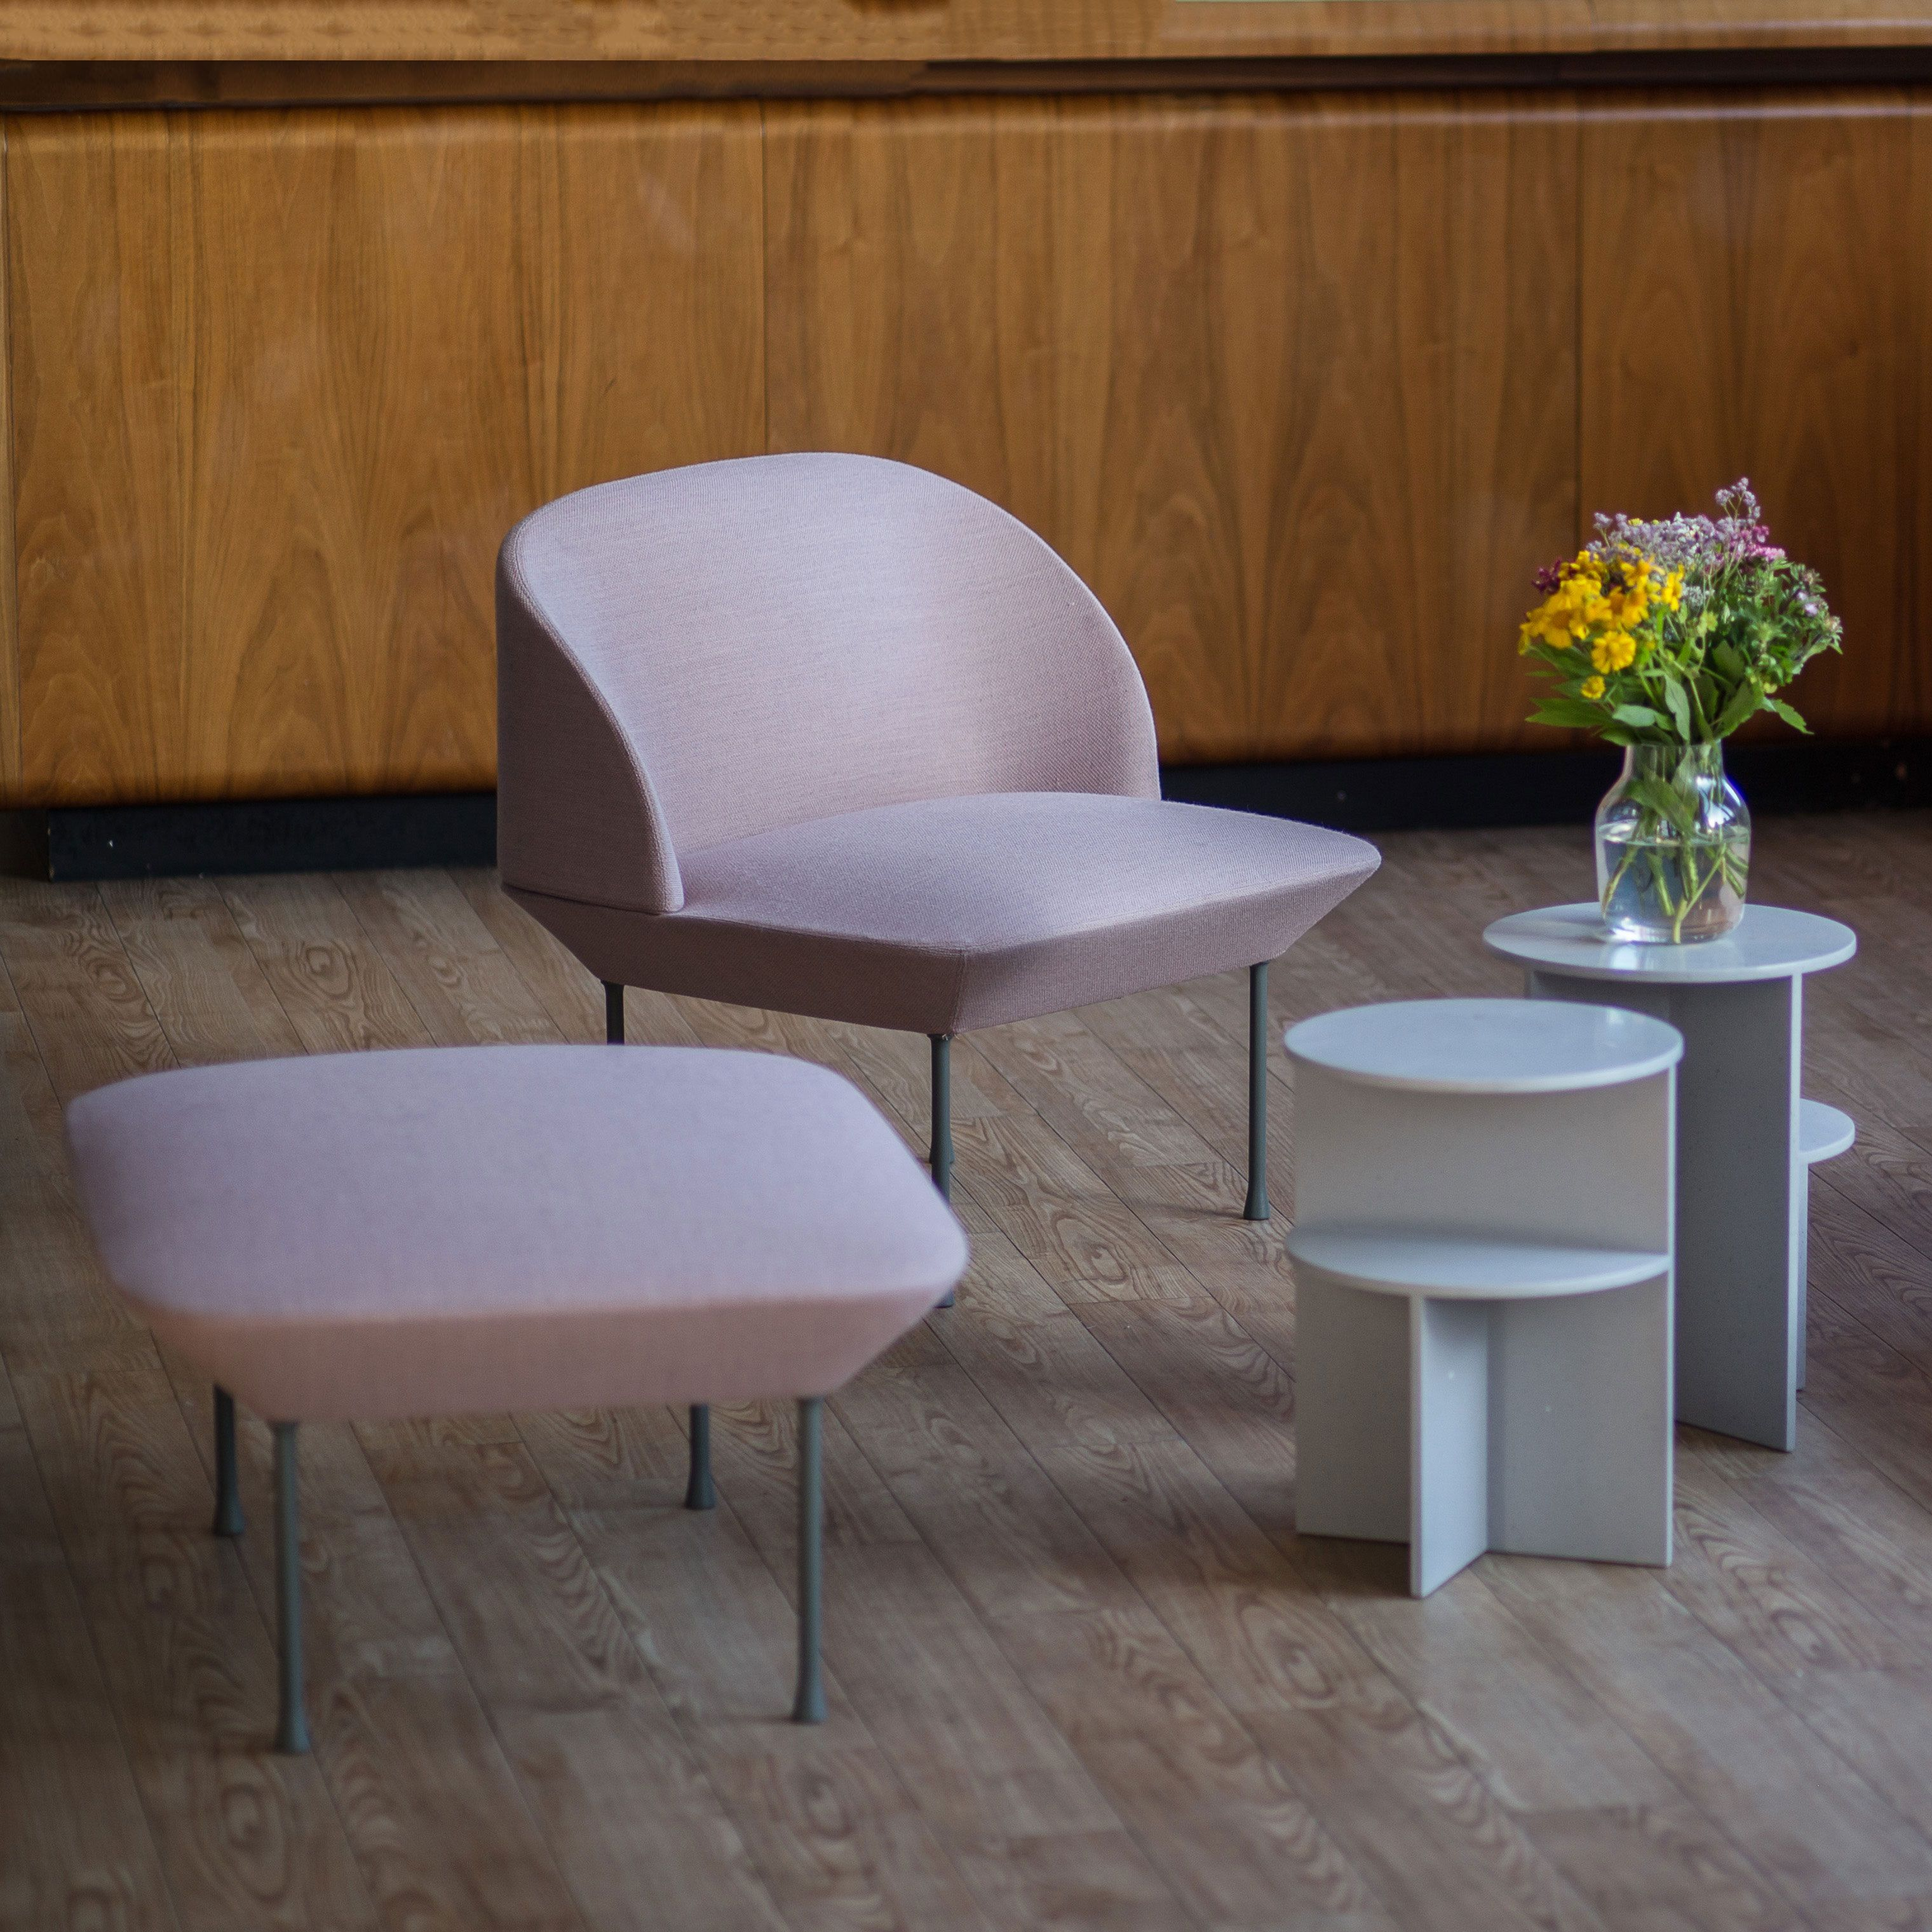 Lounge Chair Inspiration From Muuto The Oslo Sofa Family Unites Geometric Lines With A Light F Side Table Design Scandinavian Furniture Design Muuto Furniture